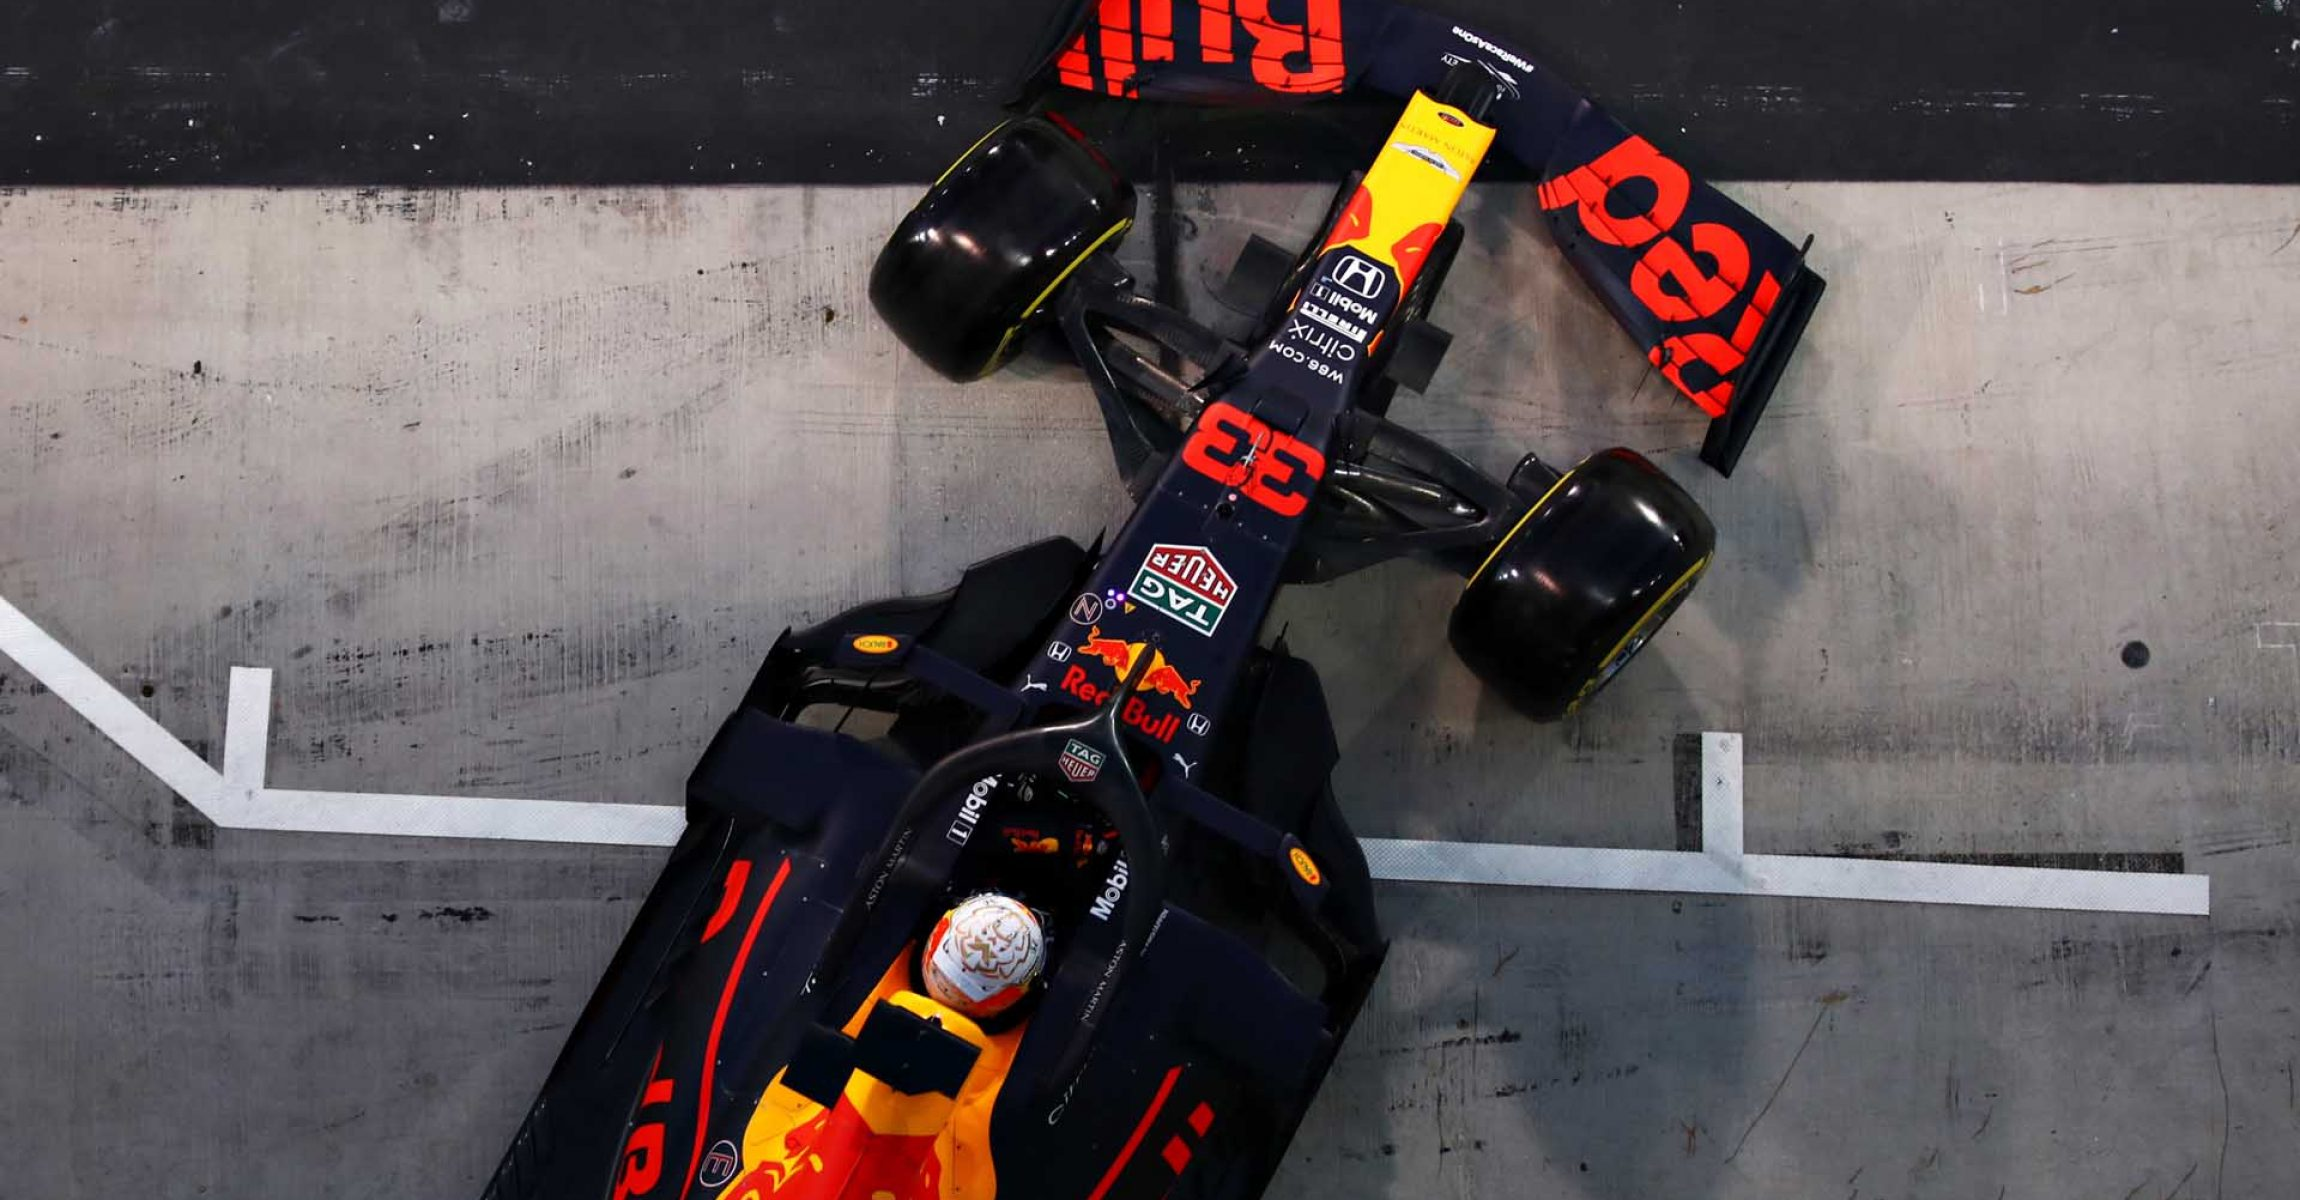 ABU DHABI, UNITED ARAB EMIRATES - DECEMBER 12: Max Verstappen of the Netherlands driving the (33) Aston Martin Red Bull Racing RB16 leaves the garage during qualifying ahead of the F1 Grand Prix of Abu Dhabi at Yas Marina Circuit on December 12, 2020 in Abu Dhabi, United Arab Emirates. (Photo by Mark Thompson/Getty Images)